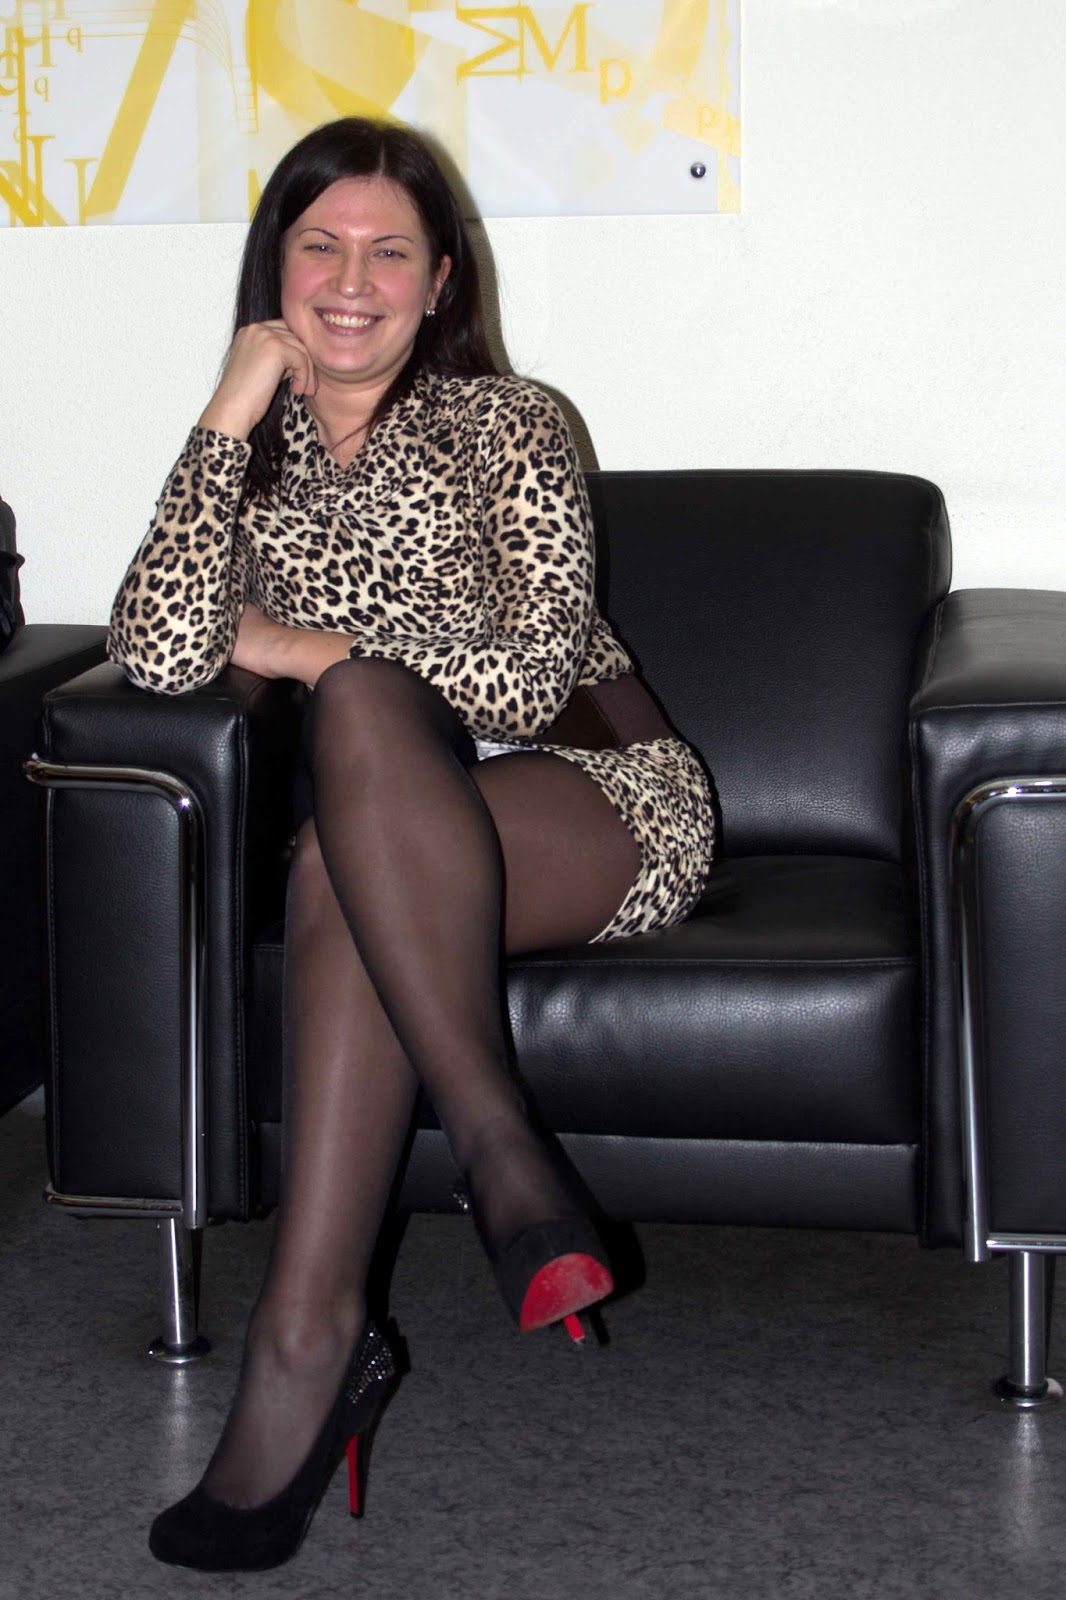 fashion tights skirt dress heels : Candid Amateur in ...